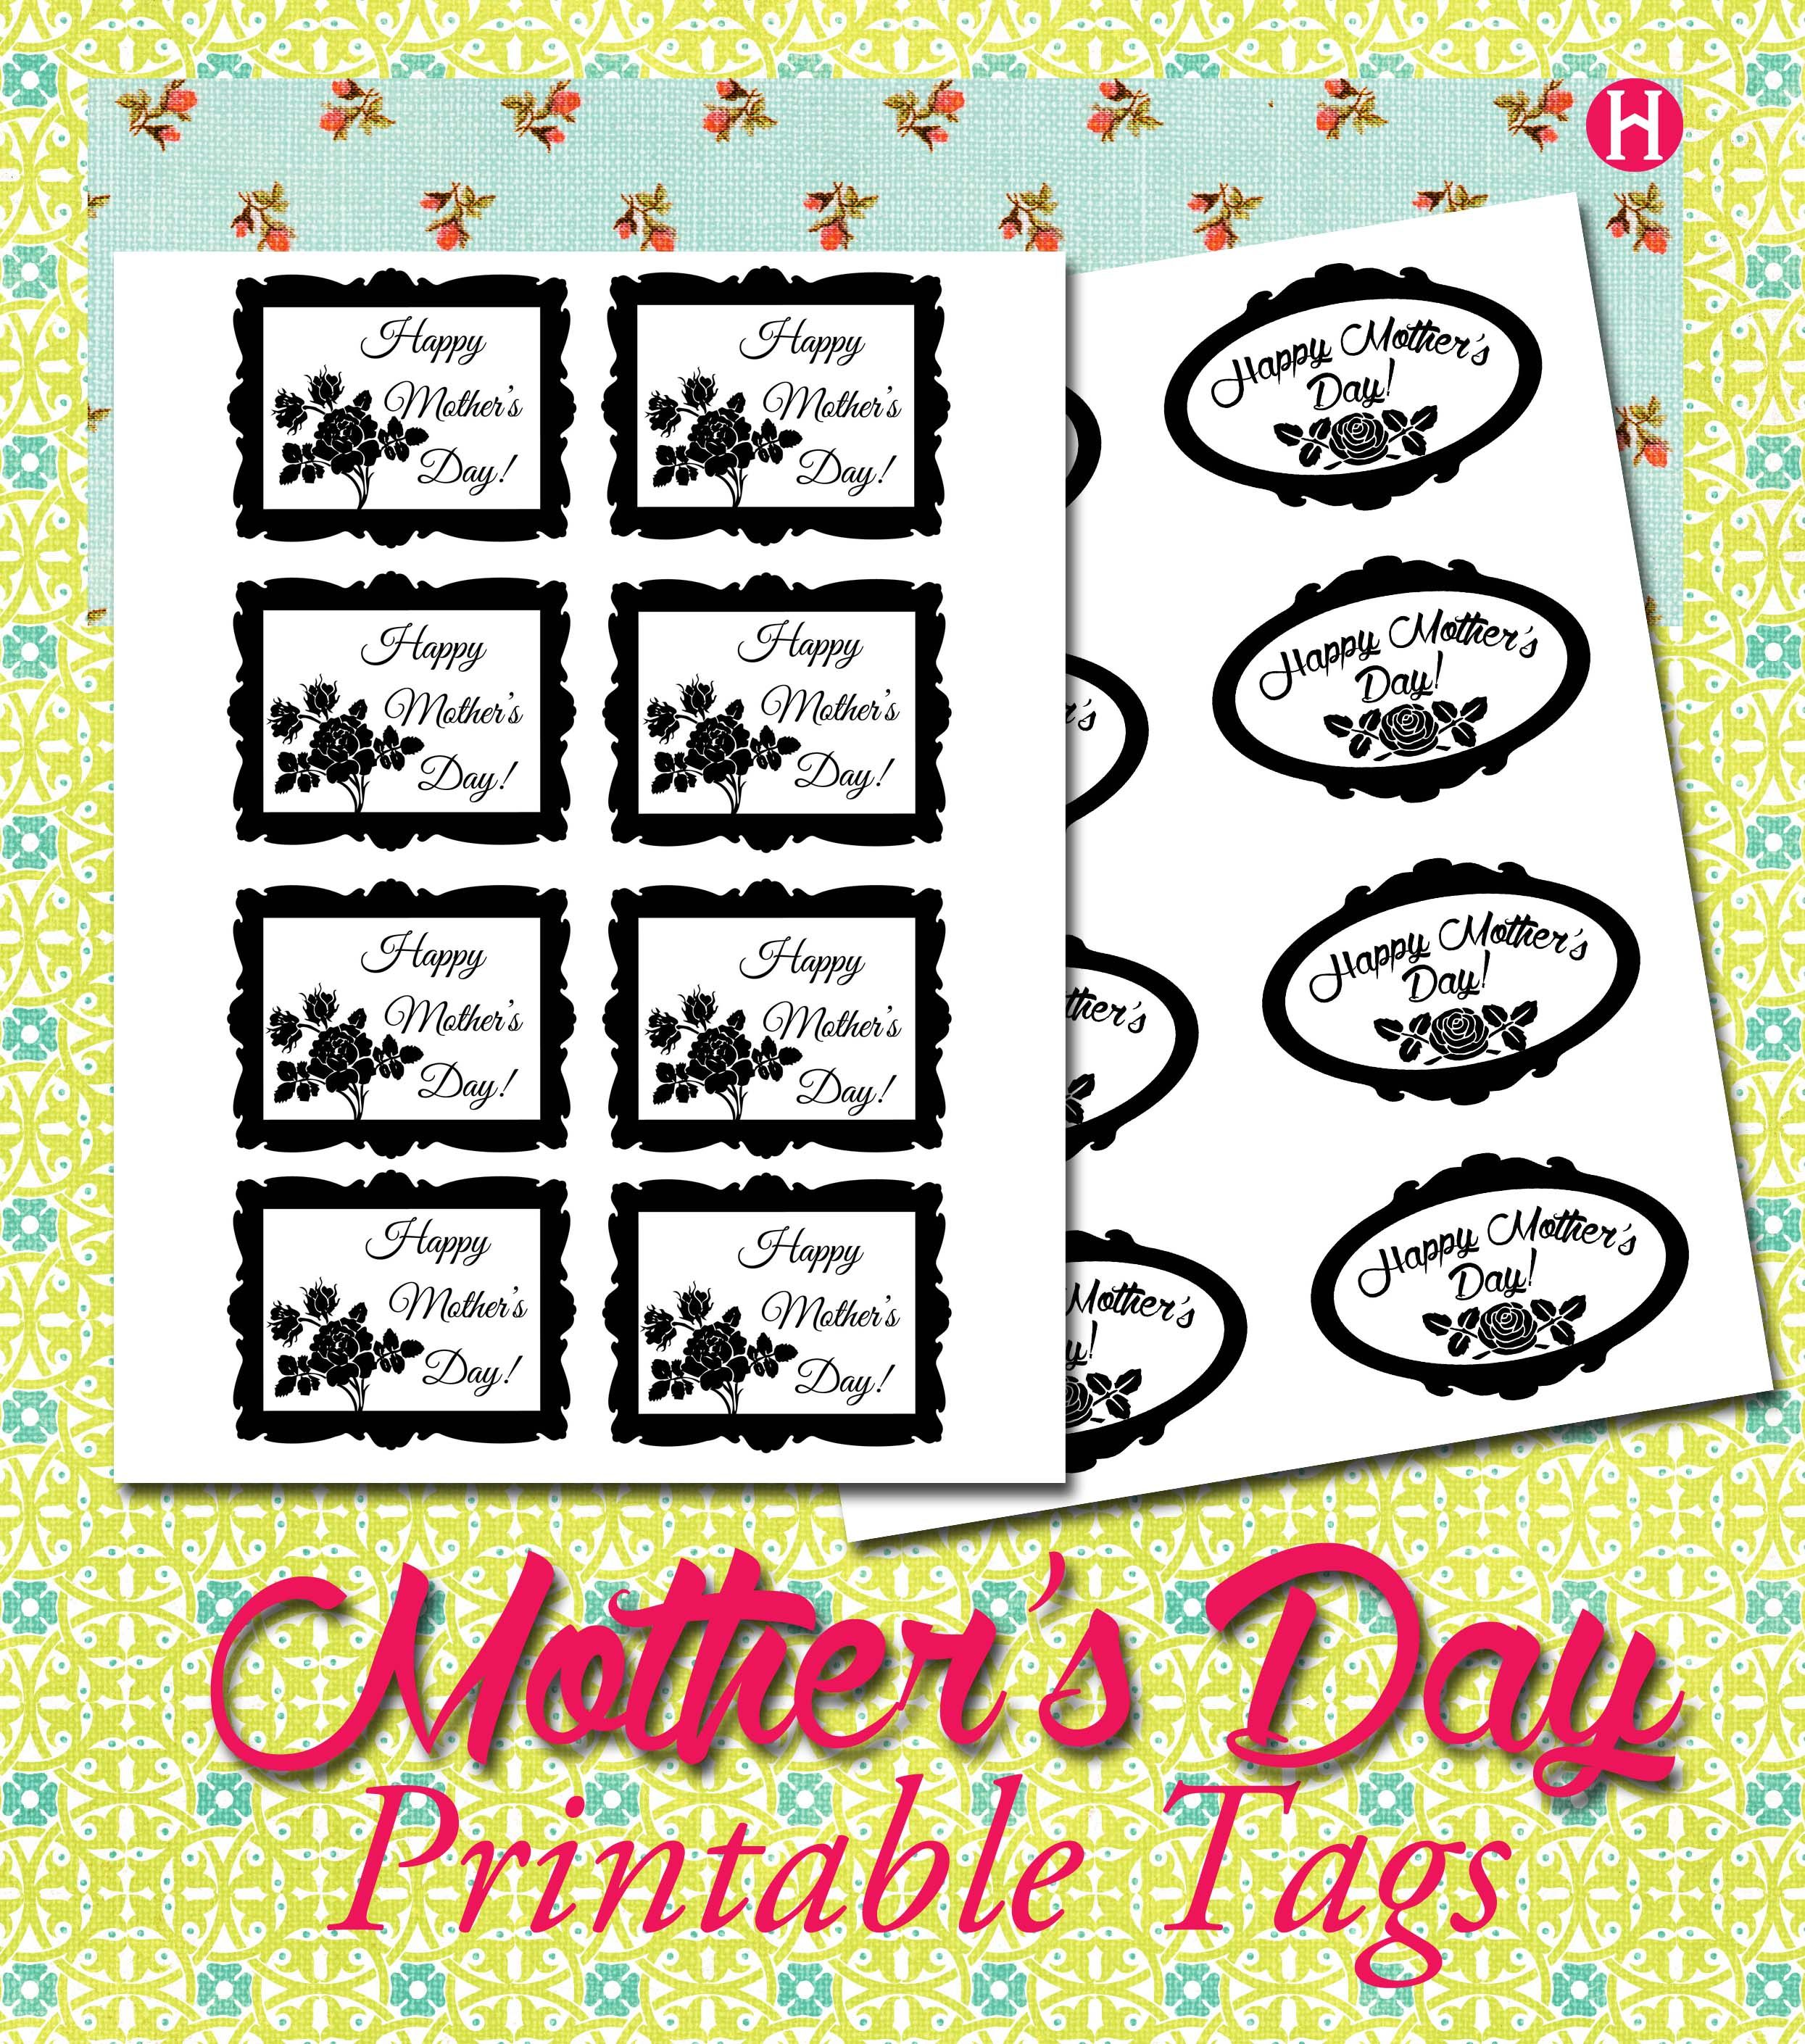 Mothers day coloring sheets for sunday school - Mother S Day Printable Tags For Your The Small Plant Or The Chocolate You Re Handing Out At Church On Mother S Day